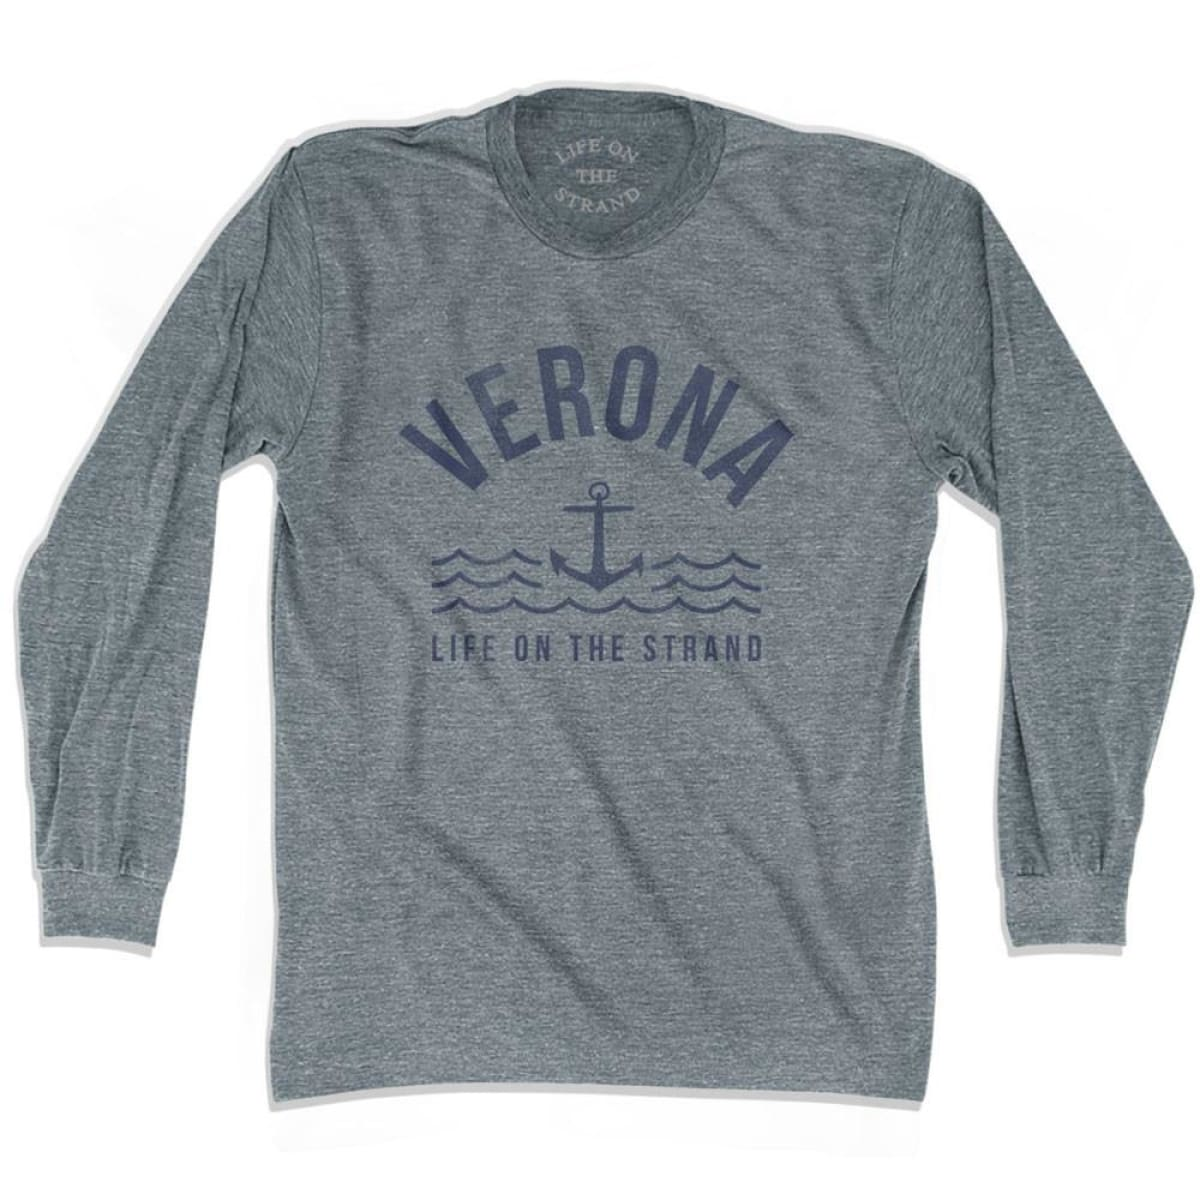 Verona Anchor Life on the Strand Long Sleeve T-shirt - Athletic Grey / Adult X-Small - Life on the Strand Anchor